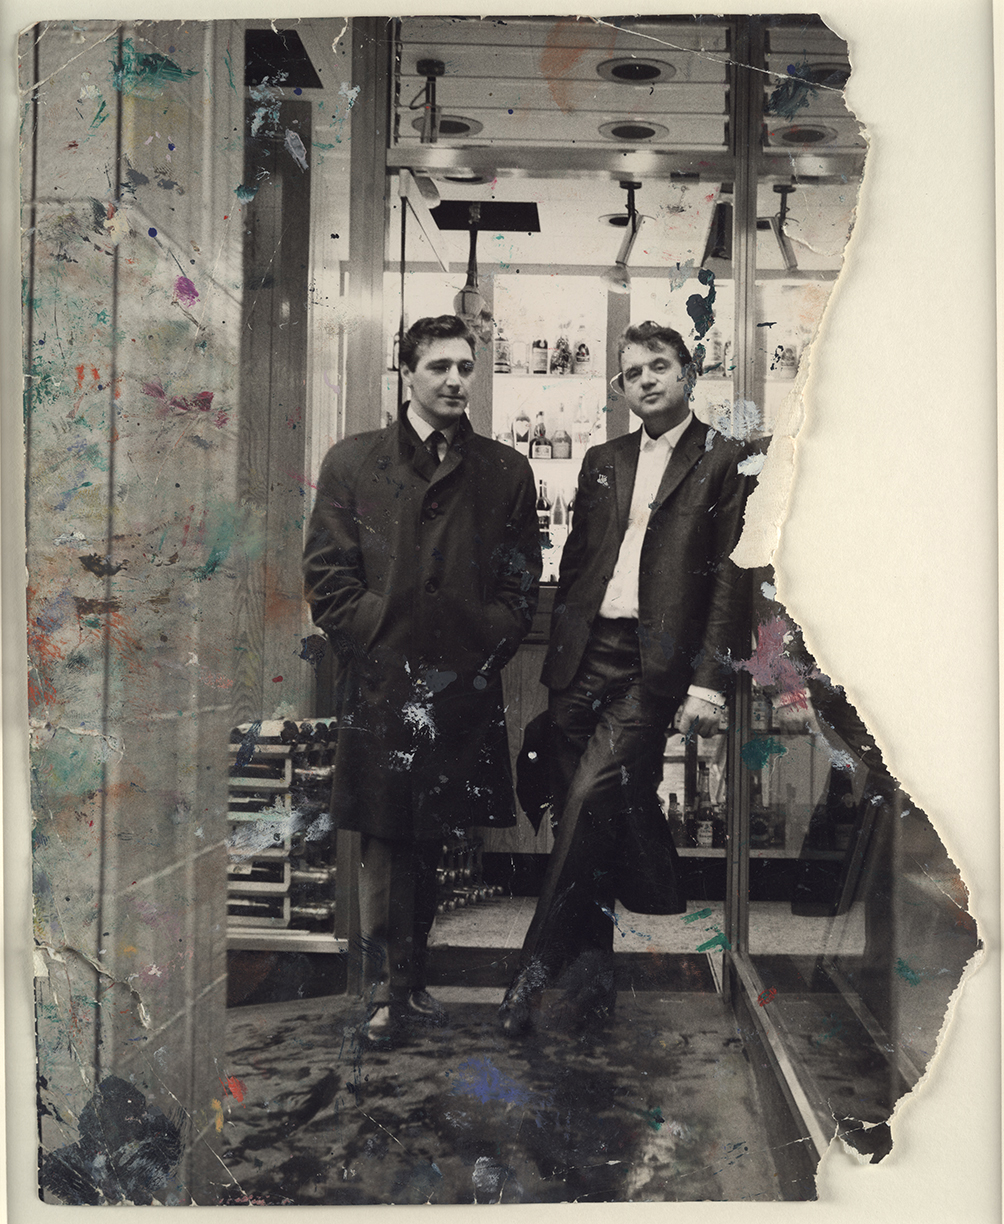 George Dyer And Francis Bacon In Soho 1966 John Deakin The Estate Of Francis Bacon All Rights Reserved DACS Photo John Deakin